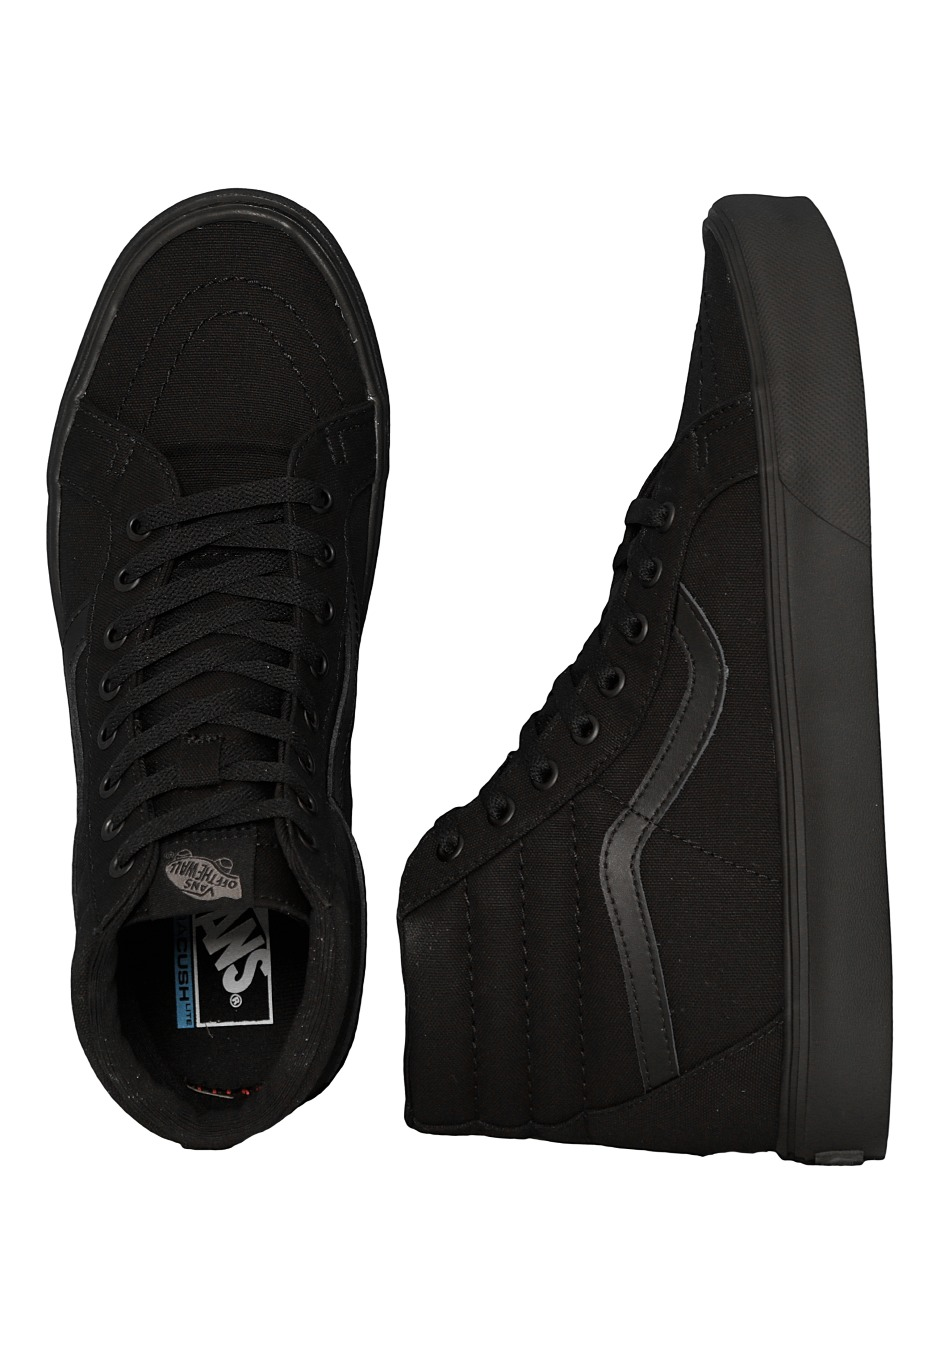 50f27755ce7da7 Vans - Sk8-Hi Lite + Canvas Black Black - Girl Shoes - Impericon.com UK